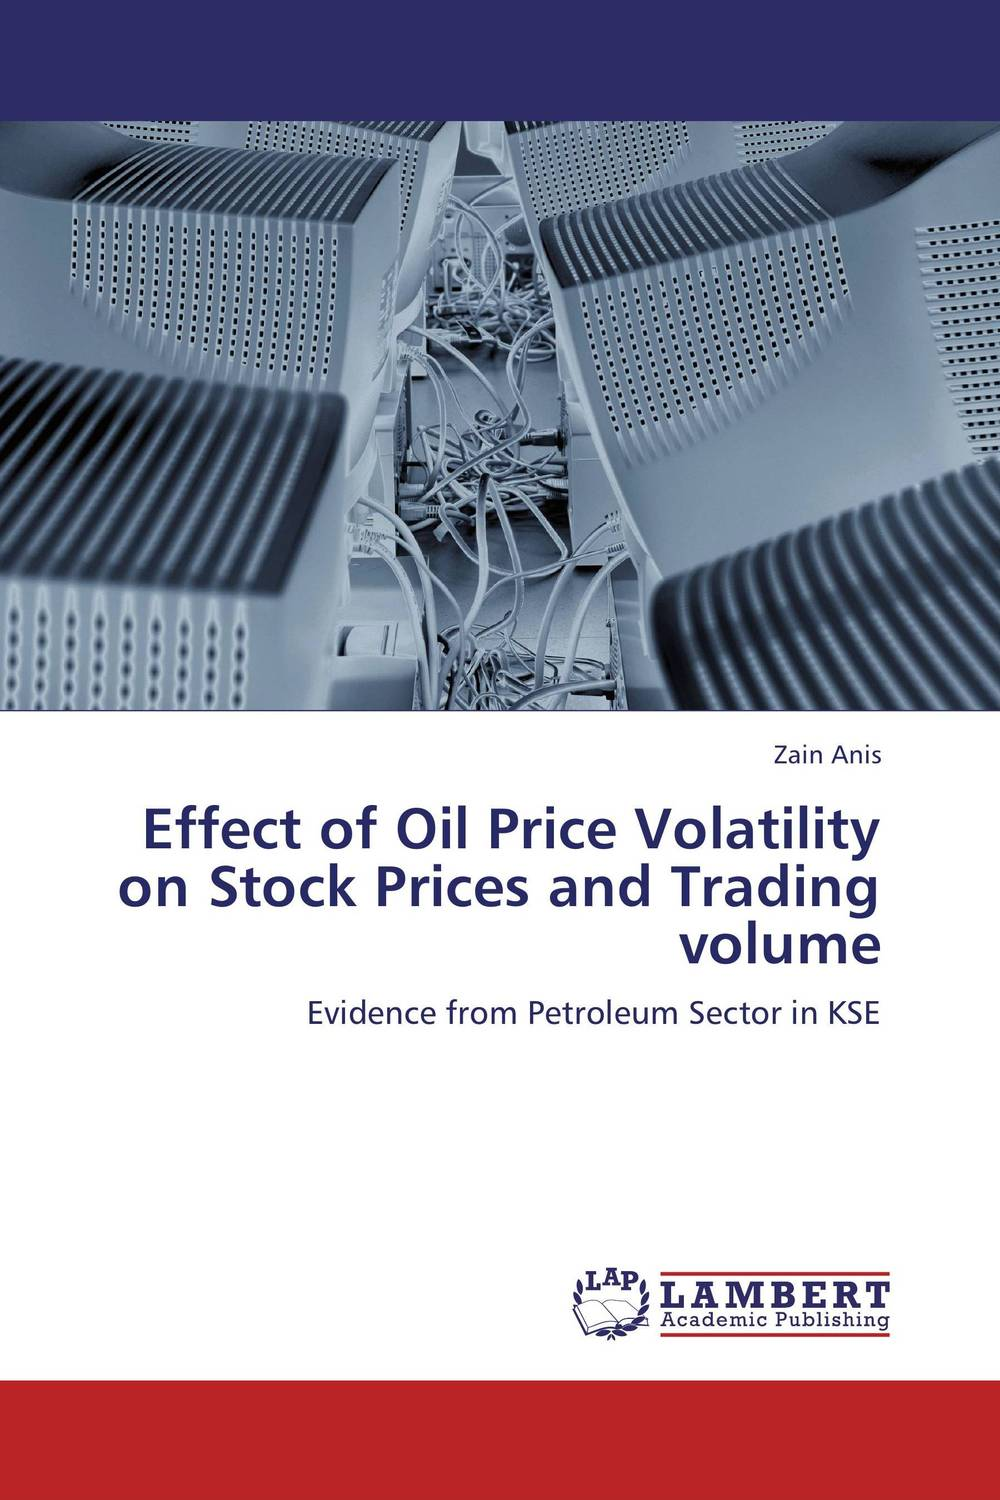 Effect of Oil Price Volatility on Stock Prices and Trading volume tobias olweny and kenedy omondi the effect of macro economic factors on stock return volatility at nse